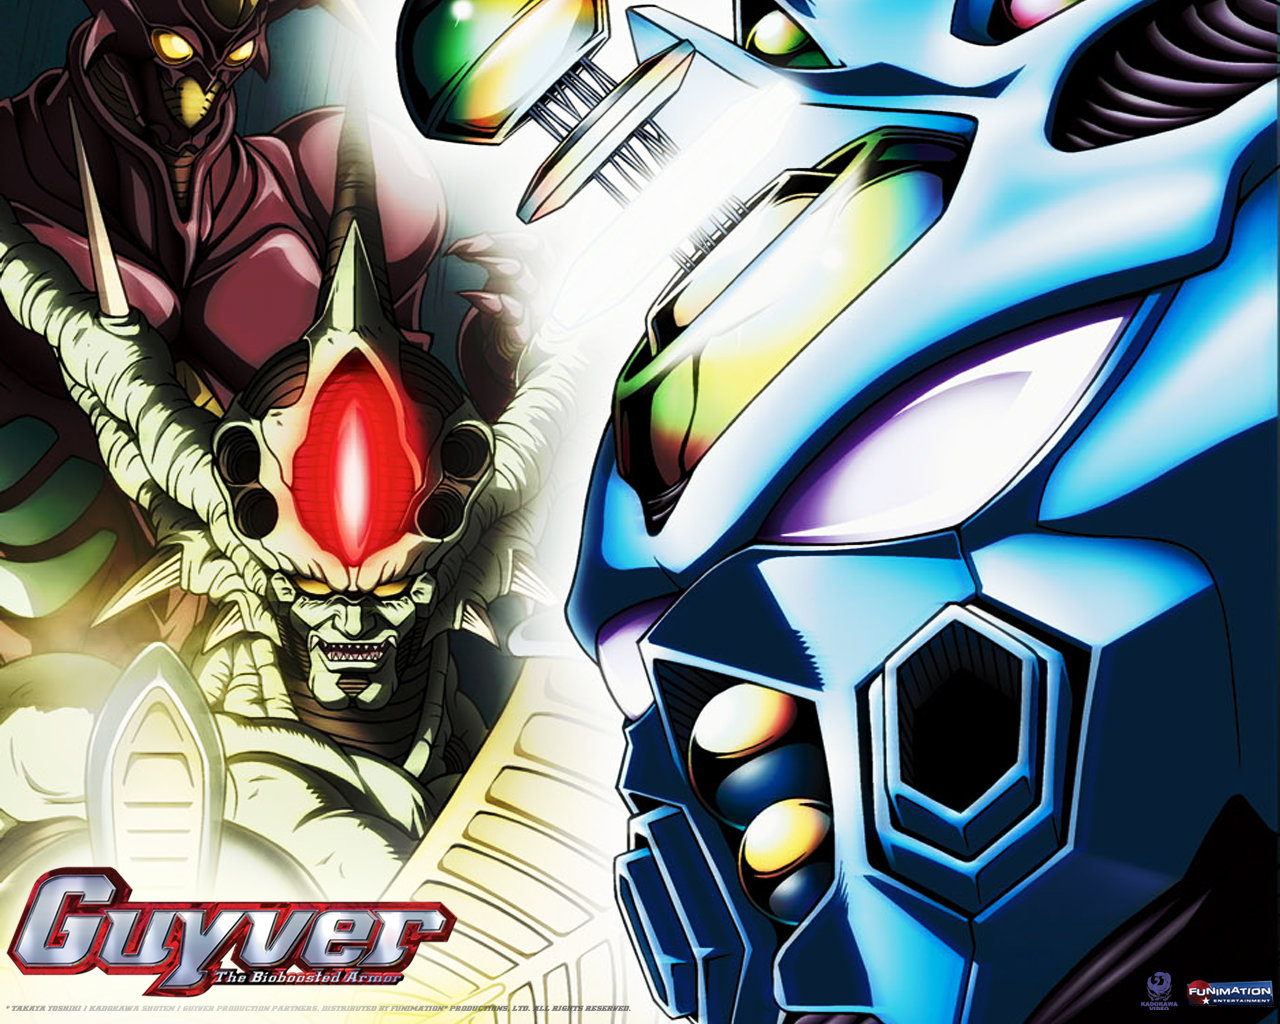 Best Guyver The Bioboosted Armor wallpaper ID:281941 for High Resolution hd 1280x1024 computer